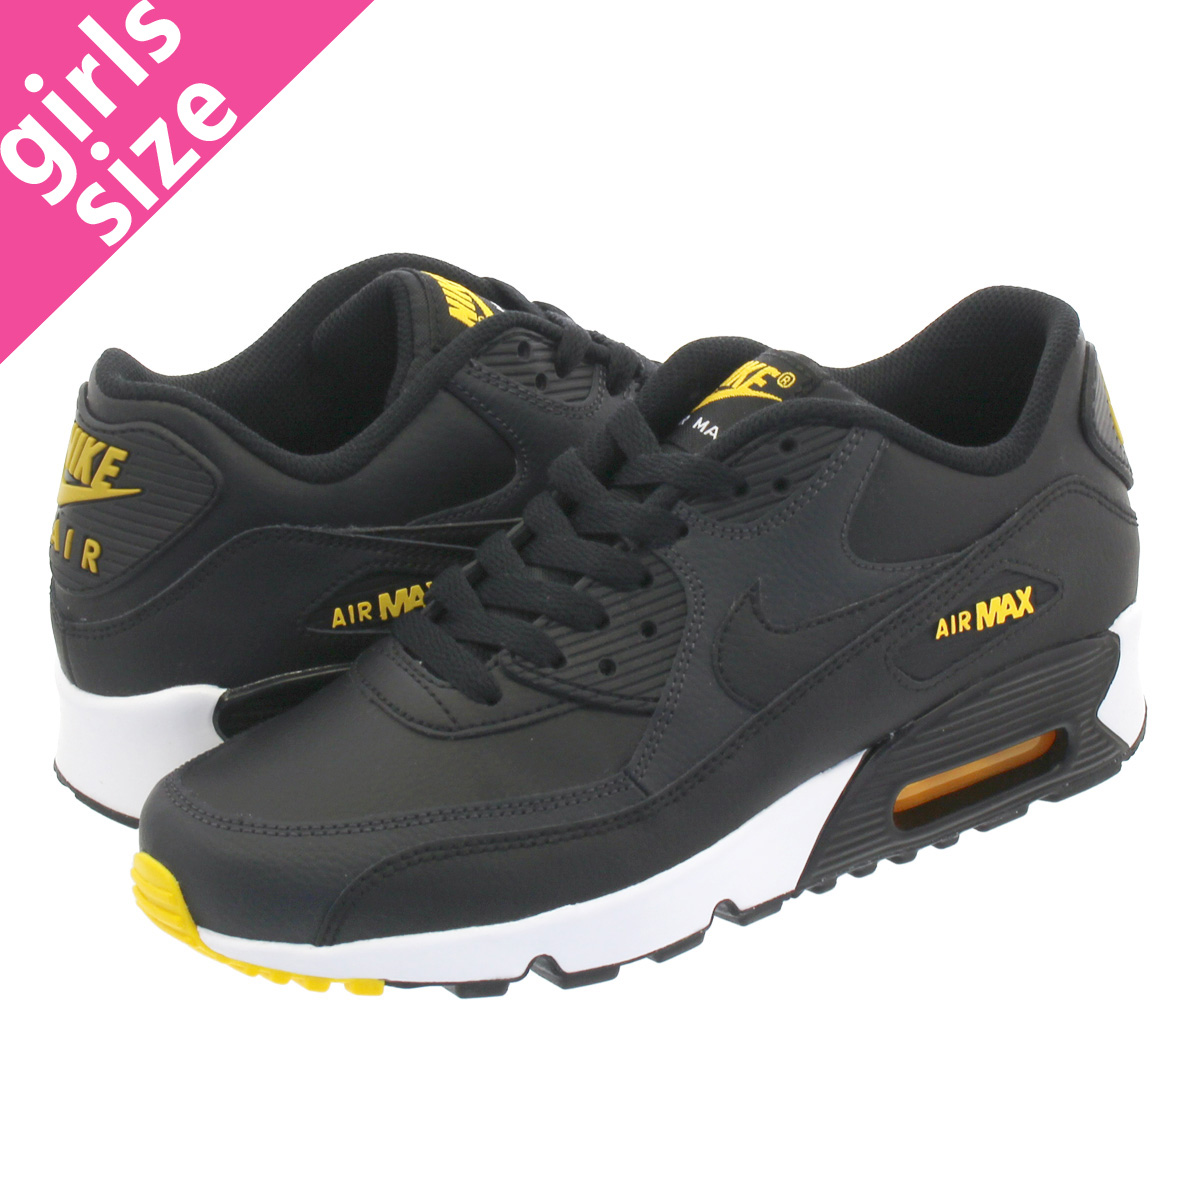 NIKE AIR MAX 90 LTR GS Kie Ney AMAX 90 leather GS BLACKAMARILLOANTHRACITE 833,412 029